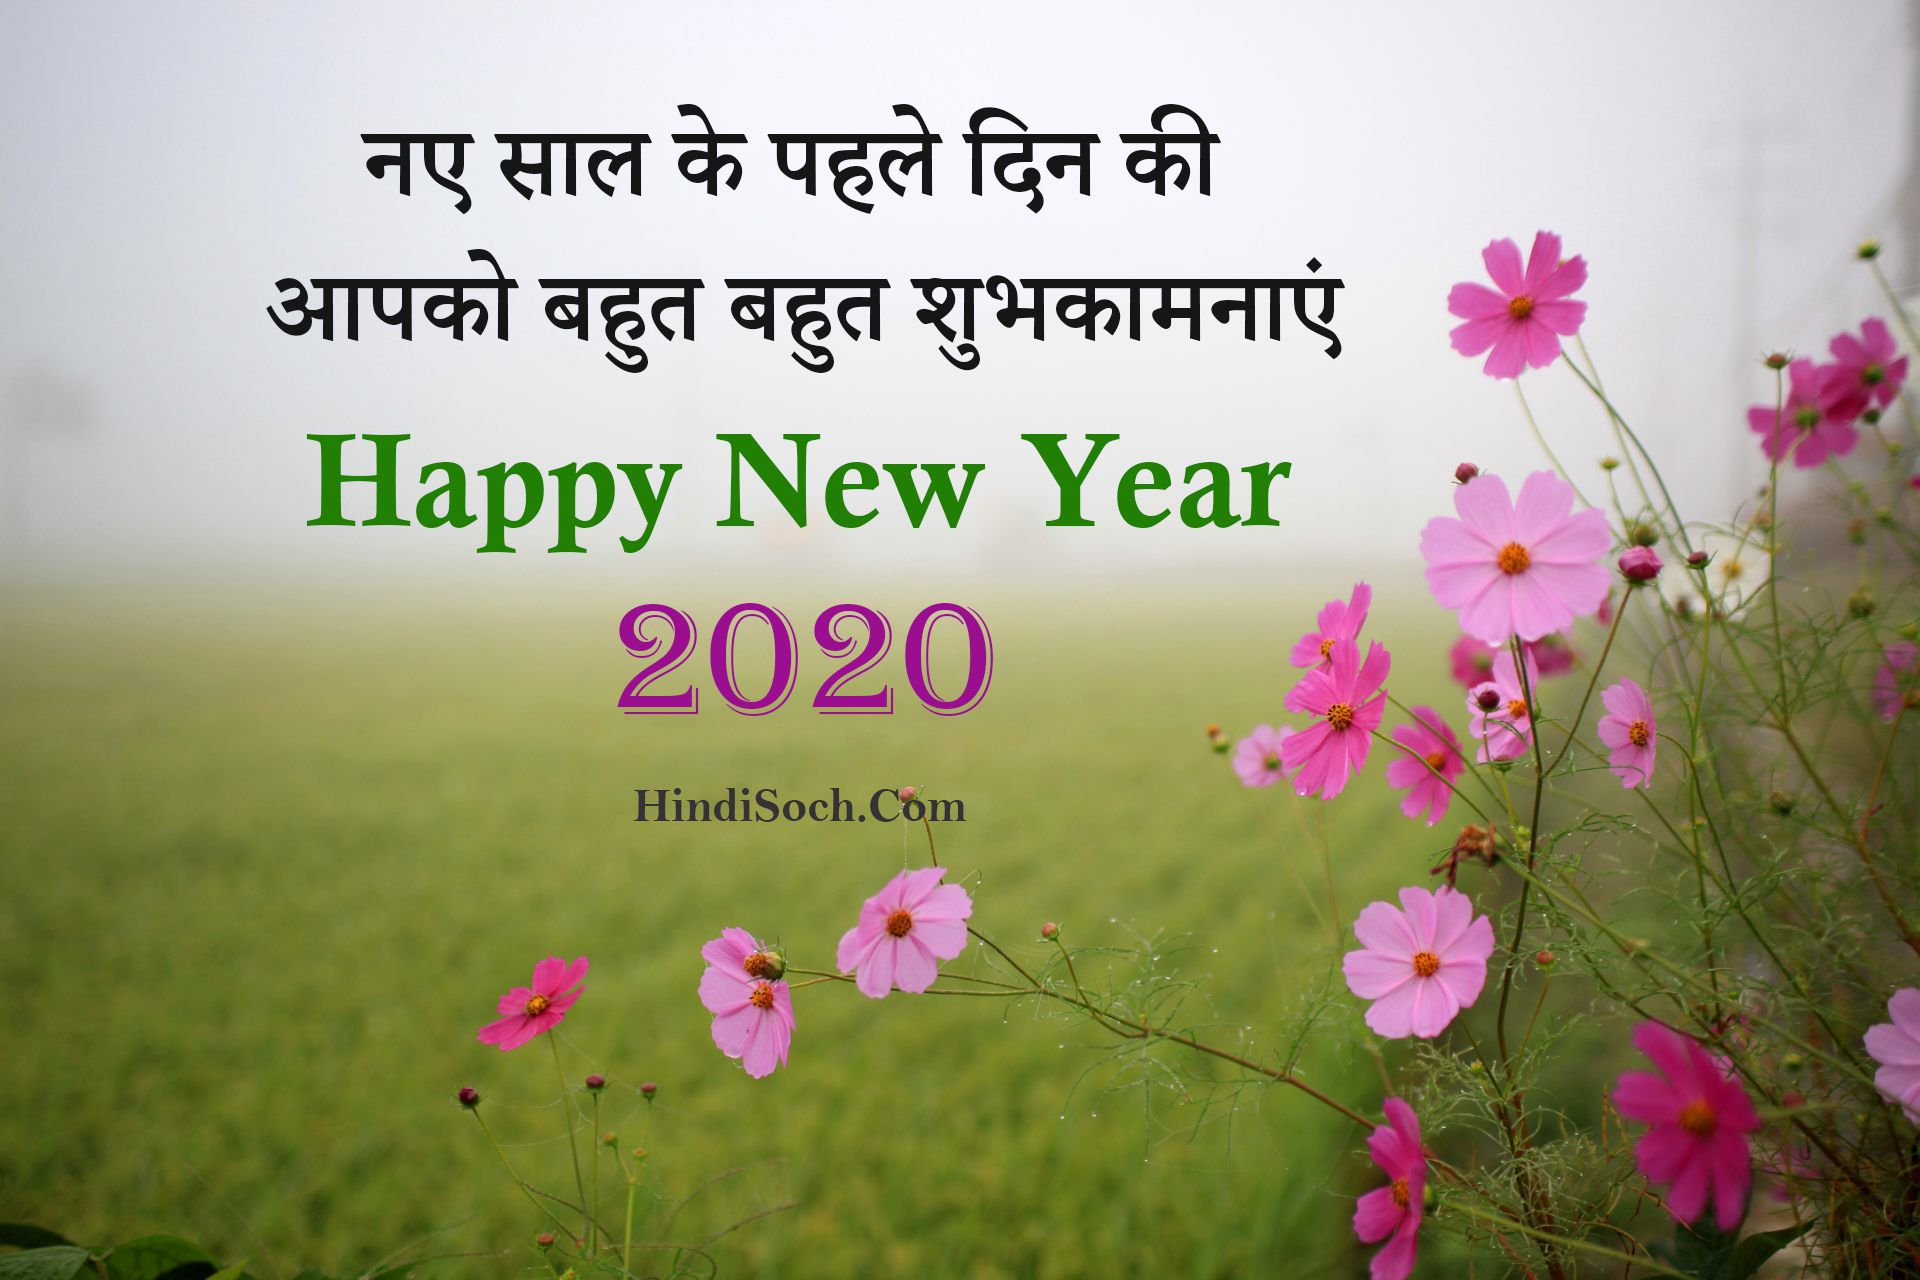 Happy New Year Shayari in Hindi for Whatsapp